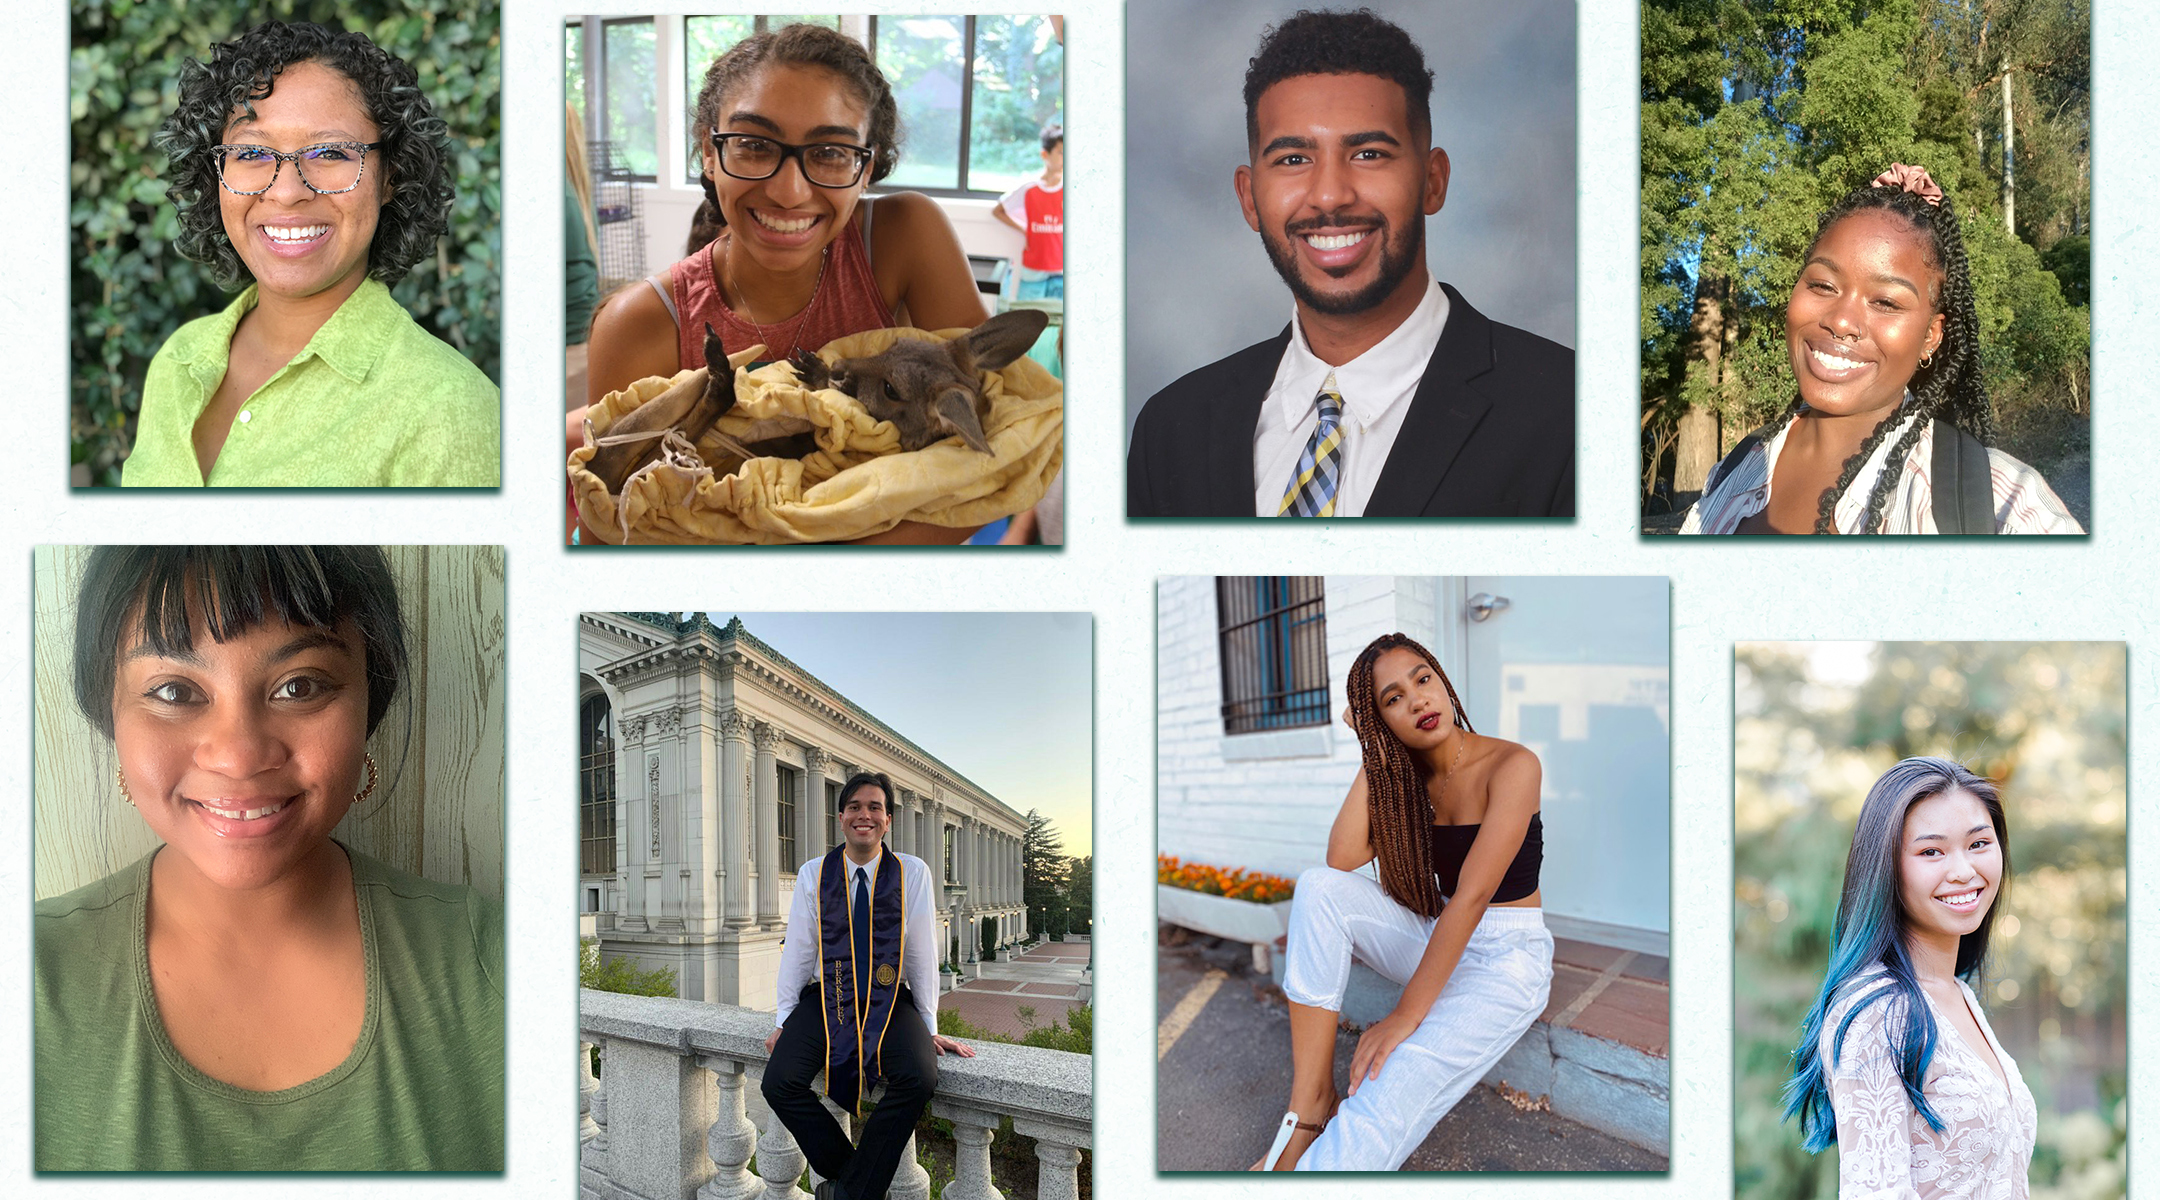 The first cohort of the Jews of Color Career Development Program (clockwise from top left): Tiziana Friedman, Sumner Lewis, Aaron Carpenter, Kayla Fleming, Anabelle Kaimach, Sharona Shnayder, Daniel Hershfield and Liyah Foye. (Photos/Courtesy of Jews of Color Initiative)